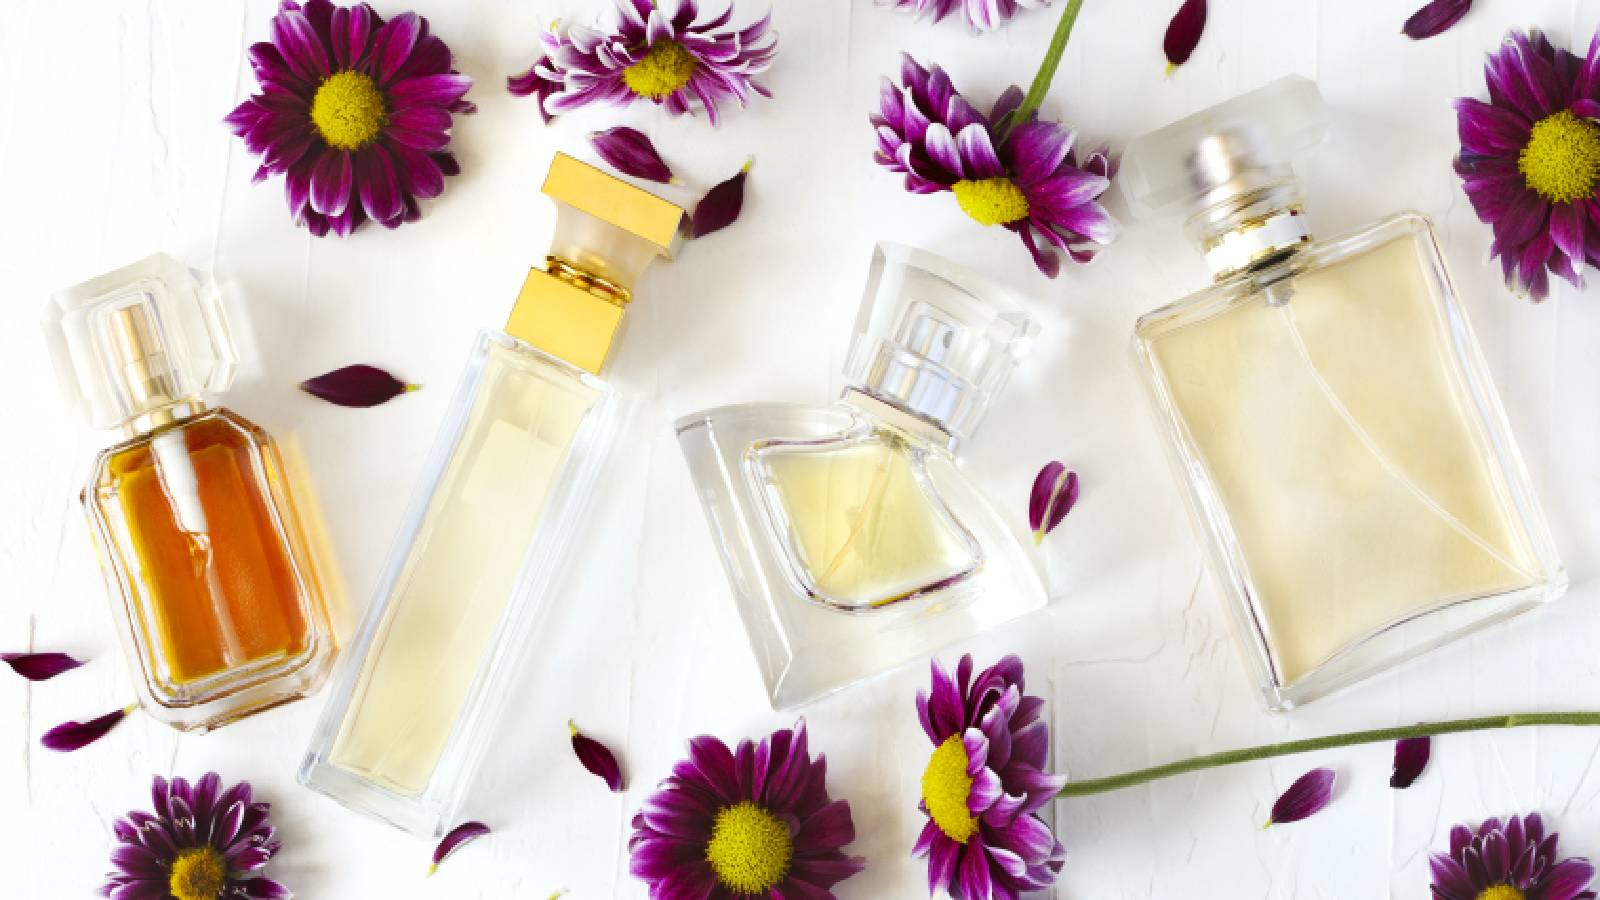 Black Friday perfume deals 2020: The